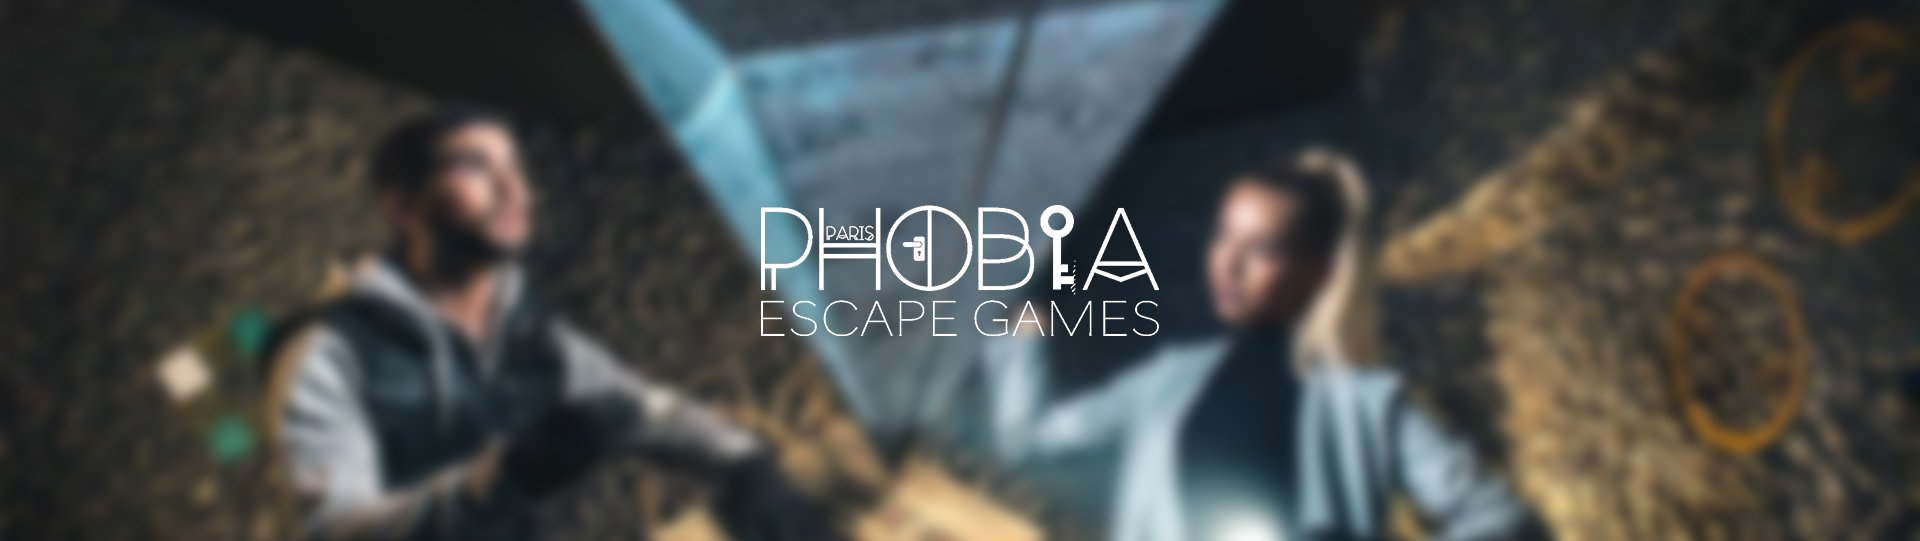 Phobia escape game Da Vinci.jpg